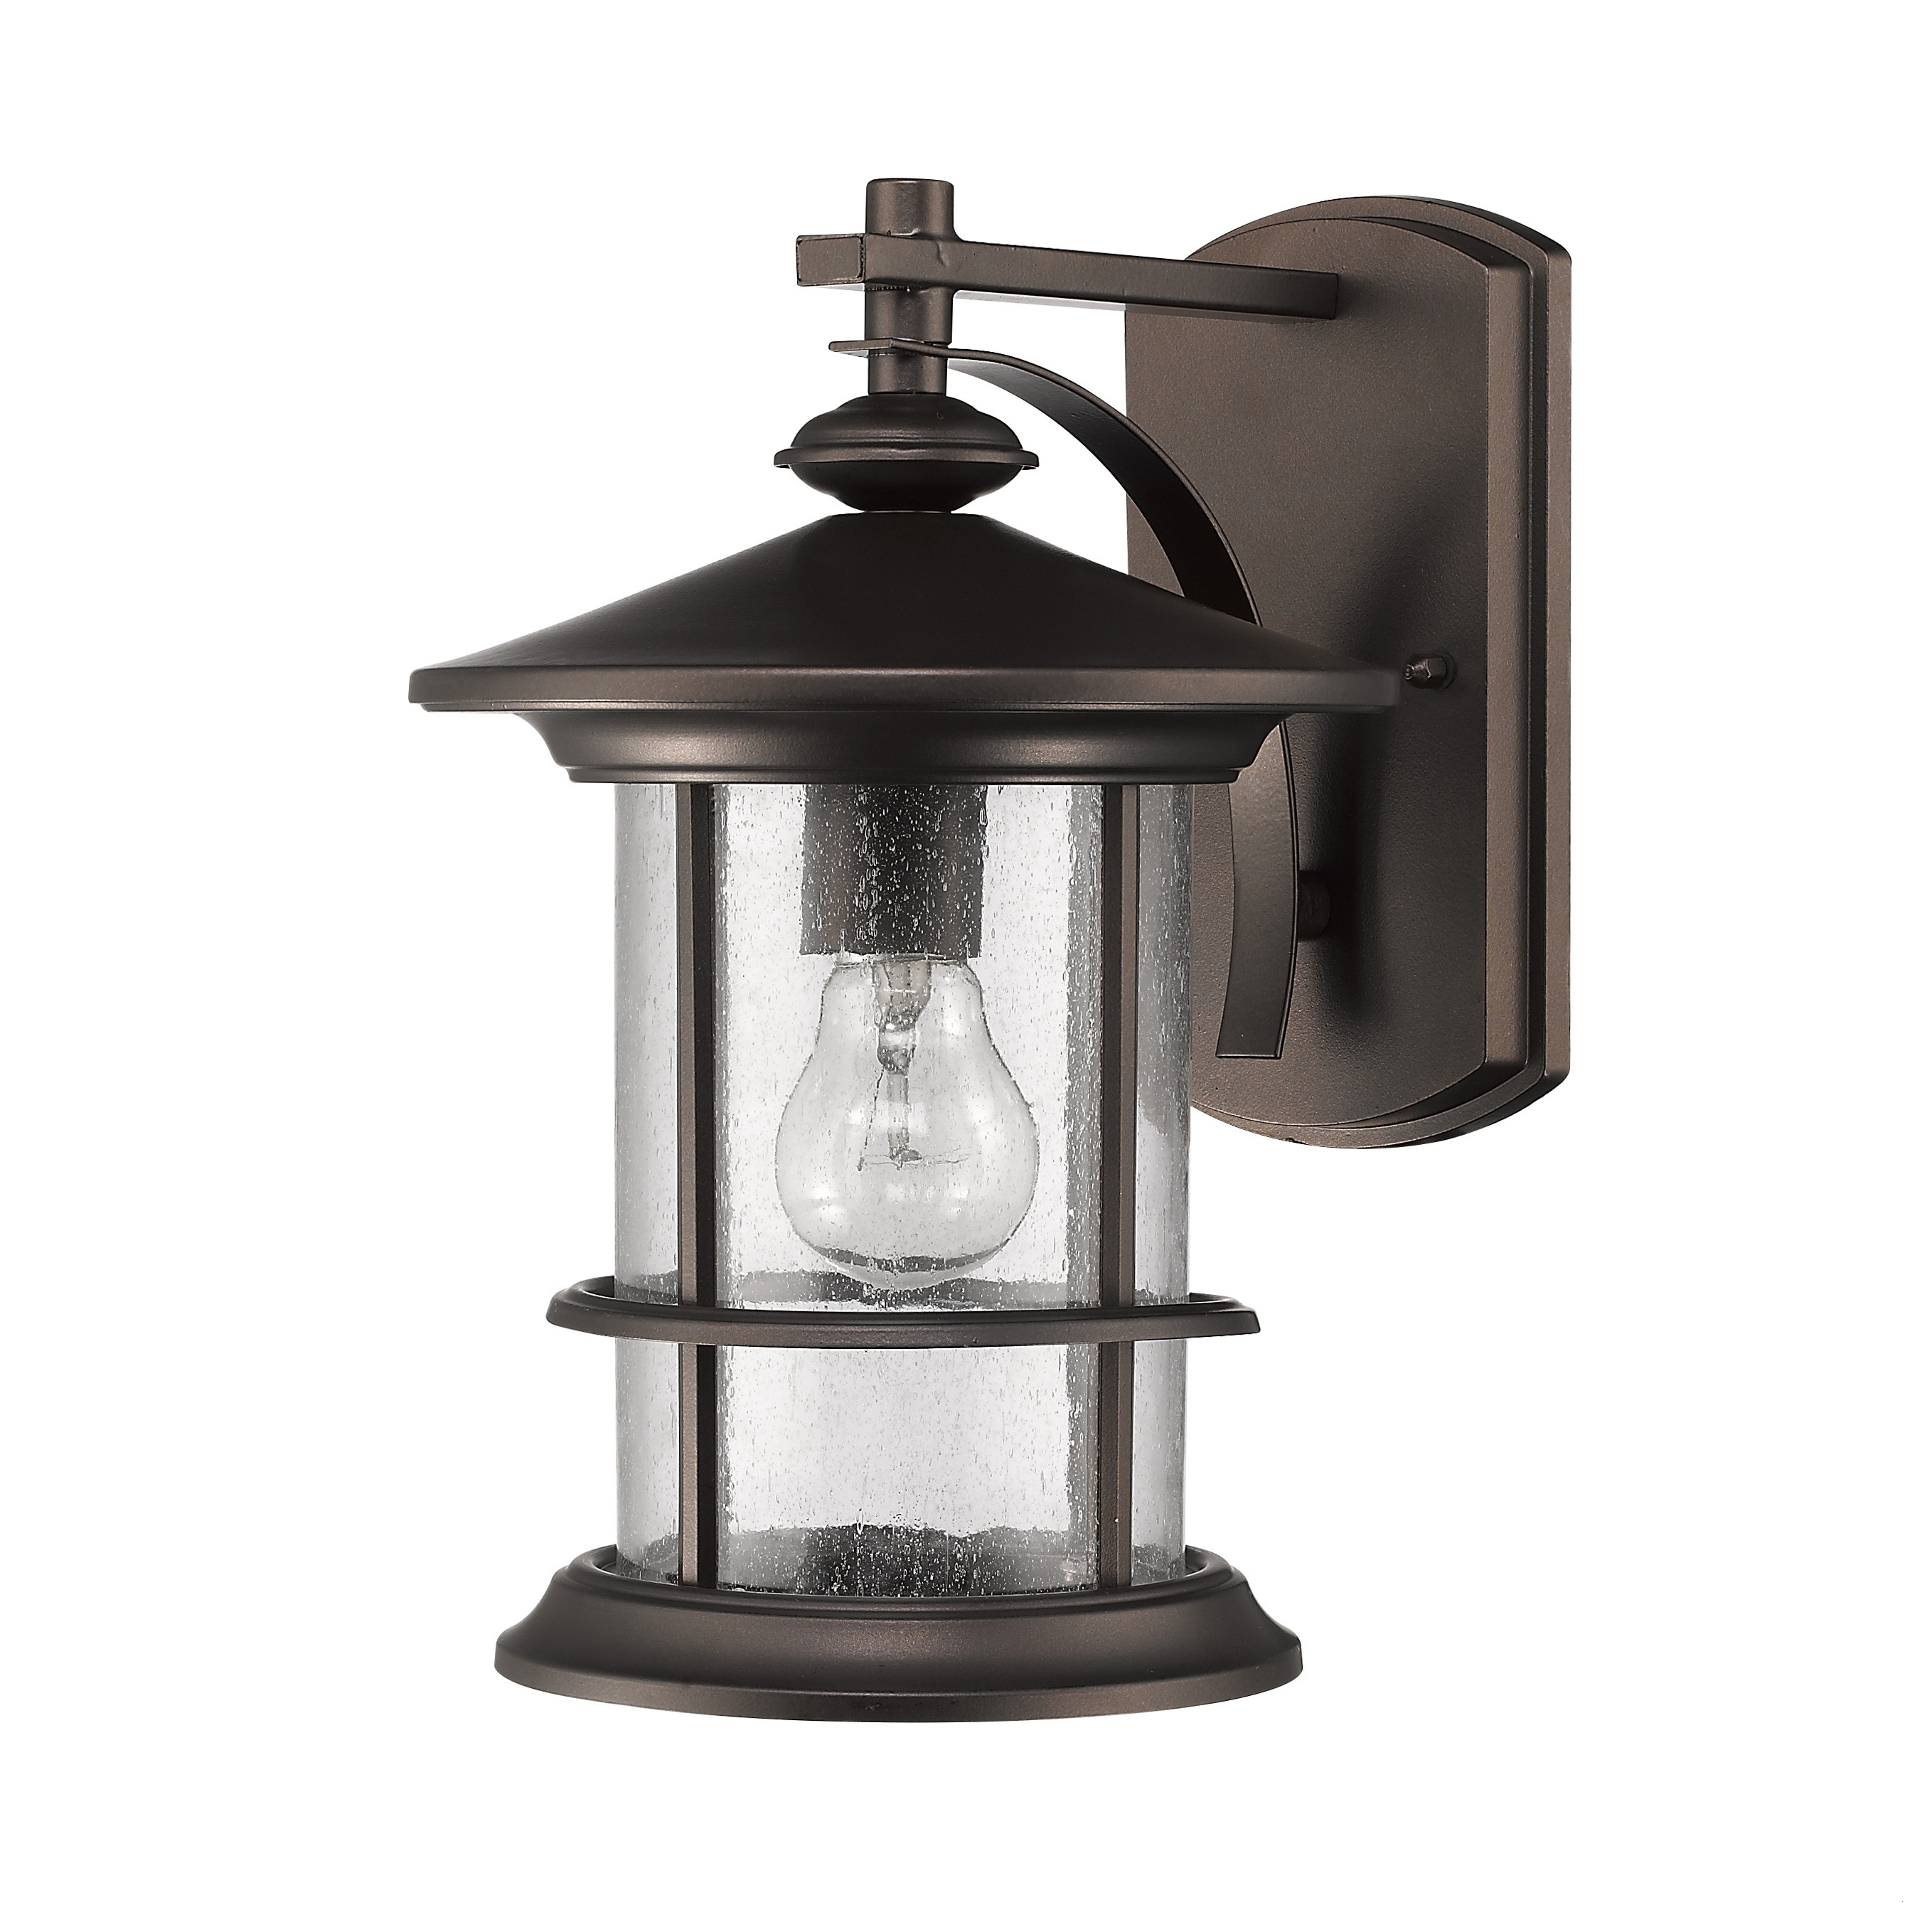 Quoizel Outdoor Lanterns Inside Most Current Quoizel Outdoor Lights Beautiful Lantern Pendant Light Fixture (Gallery 18 of 20)